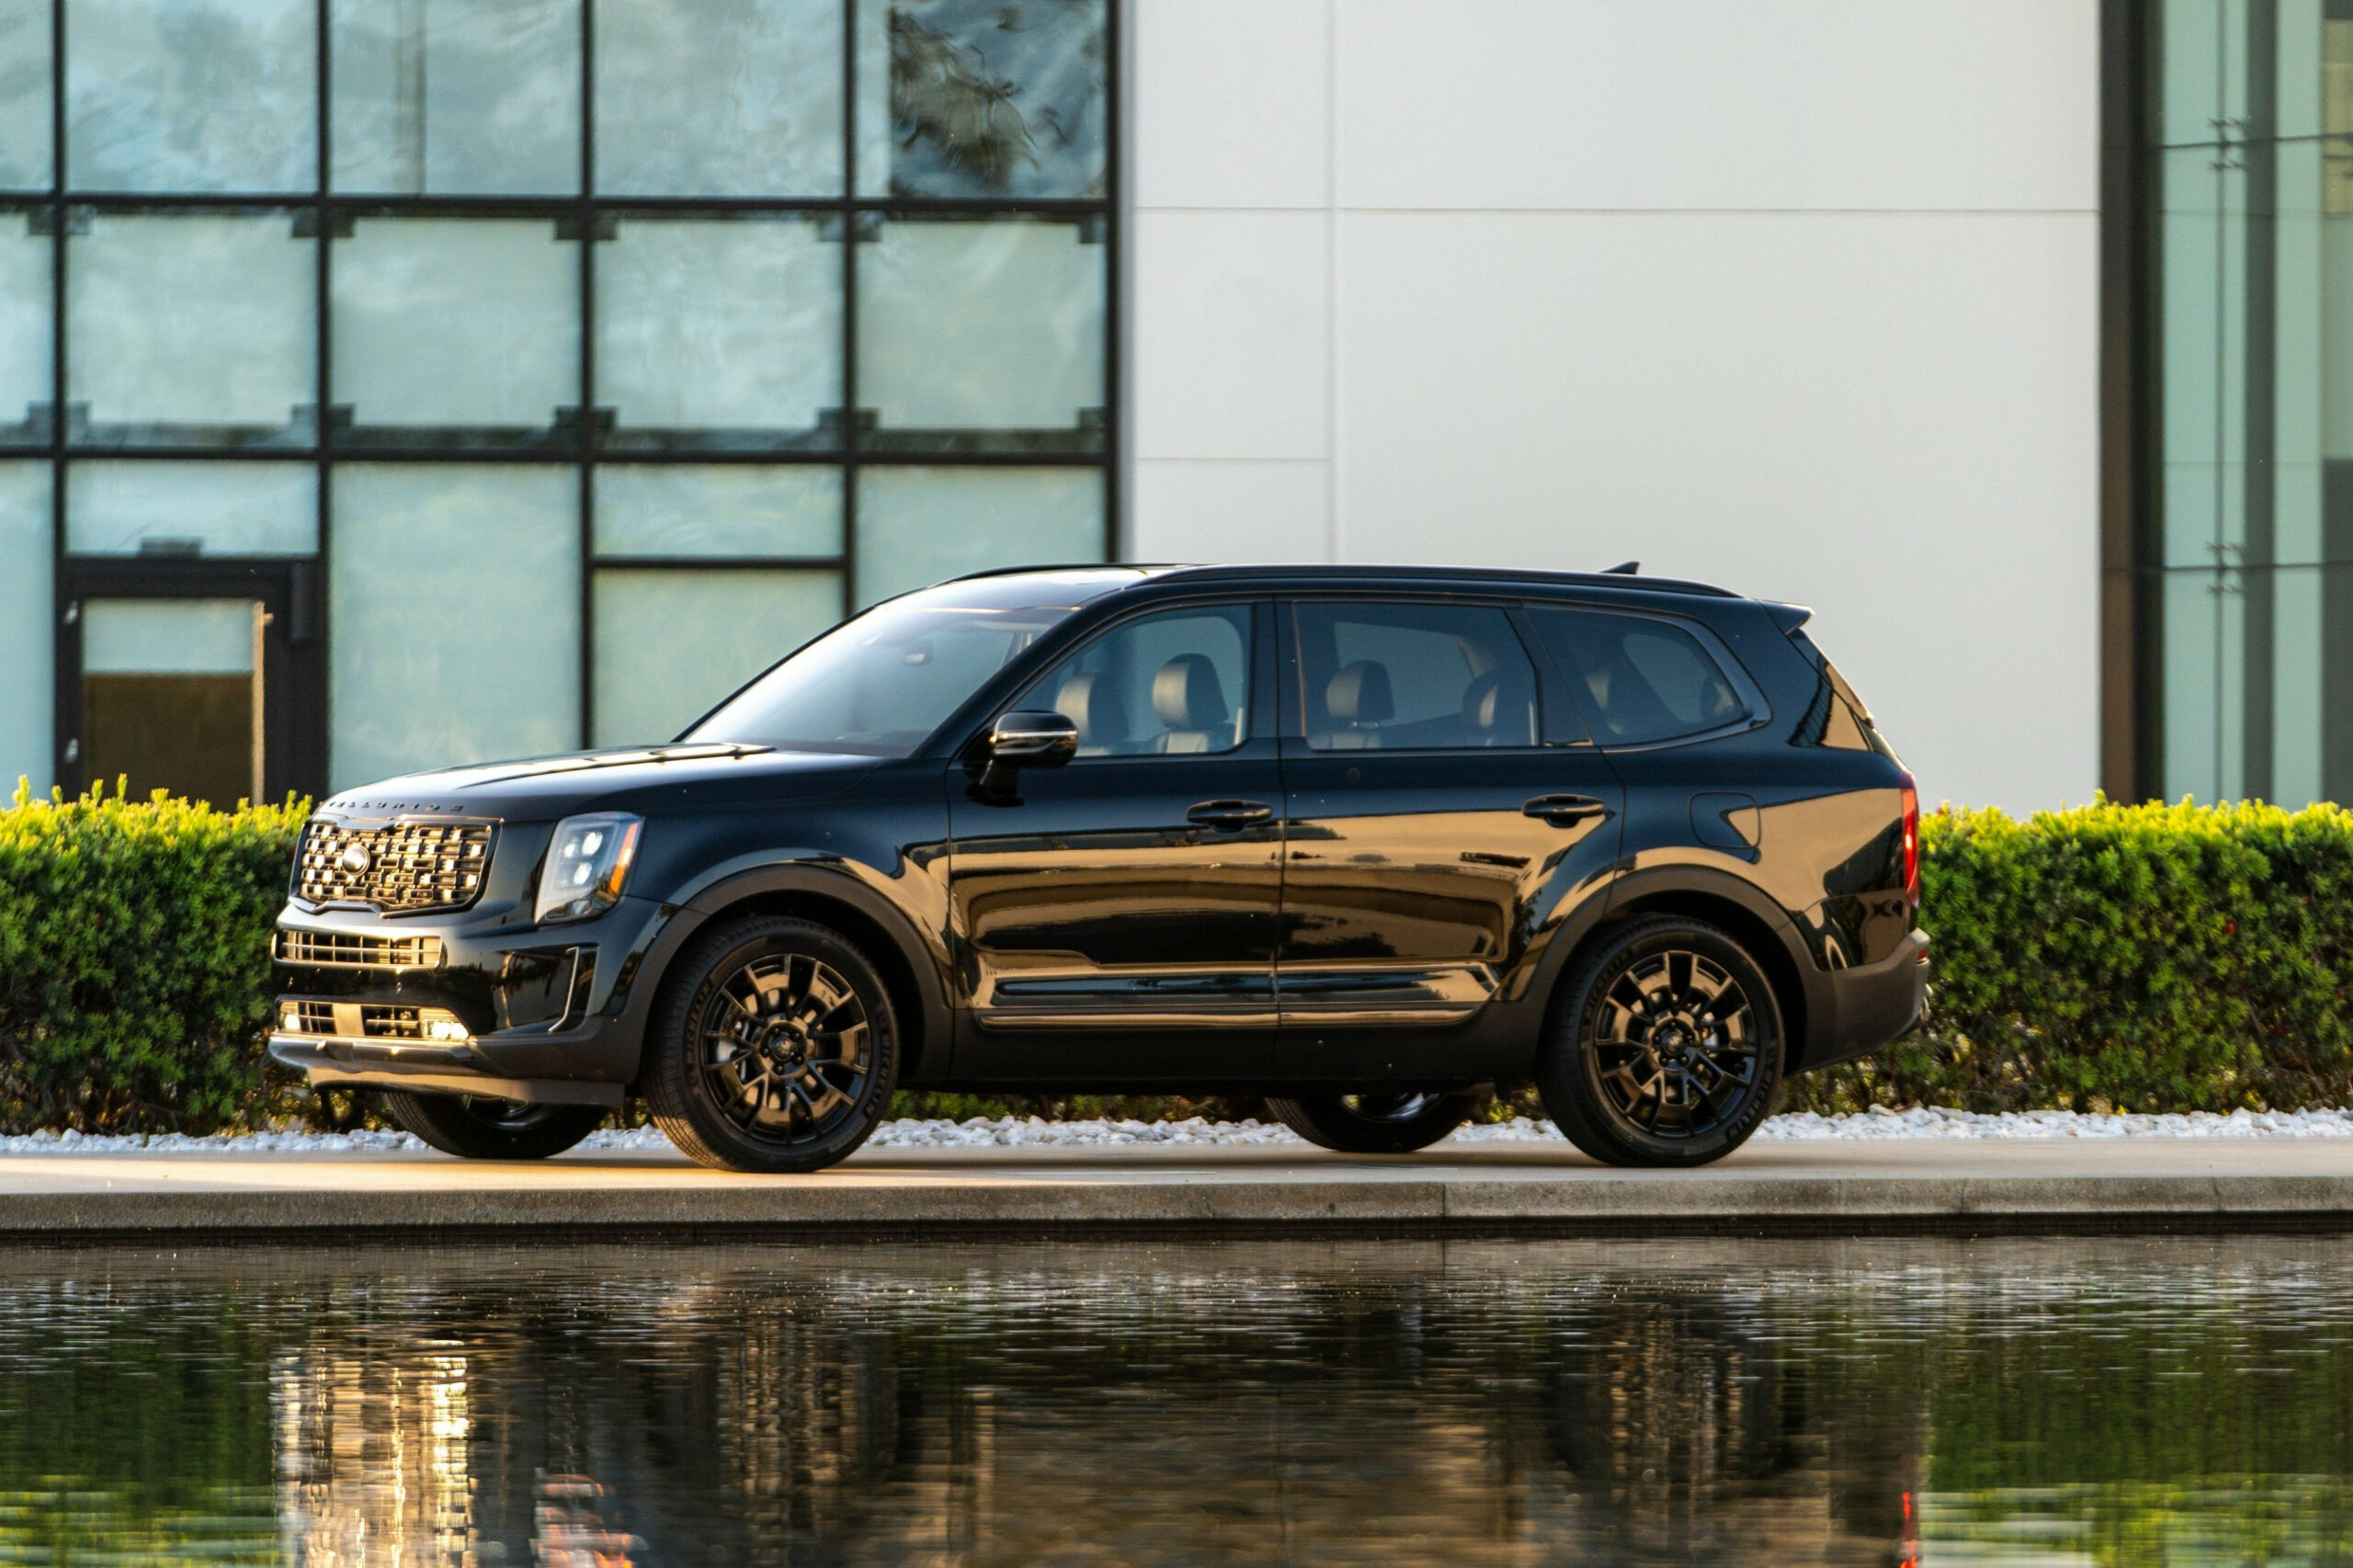 Rumors Kia Telluride 2022 For Sale